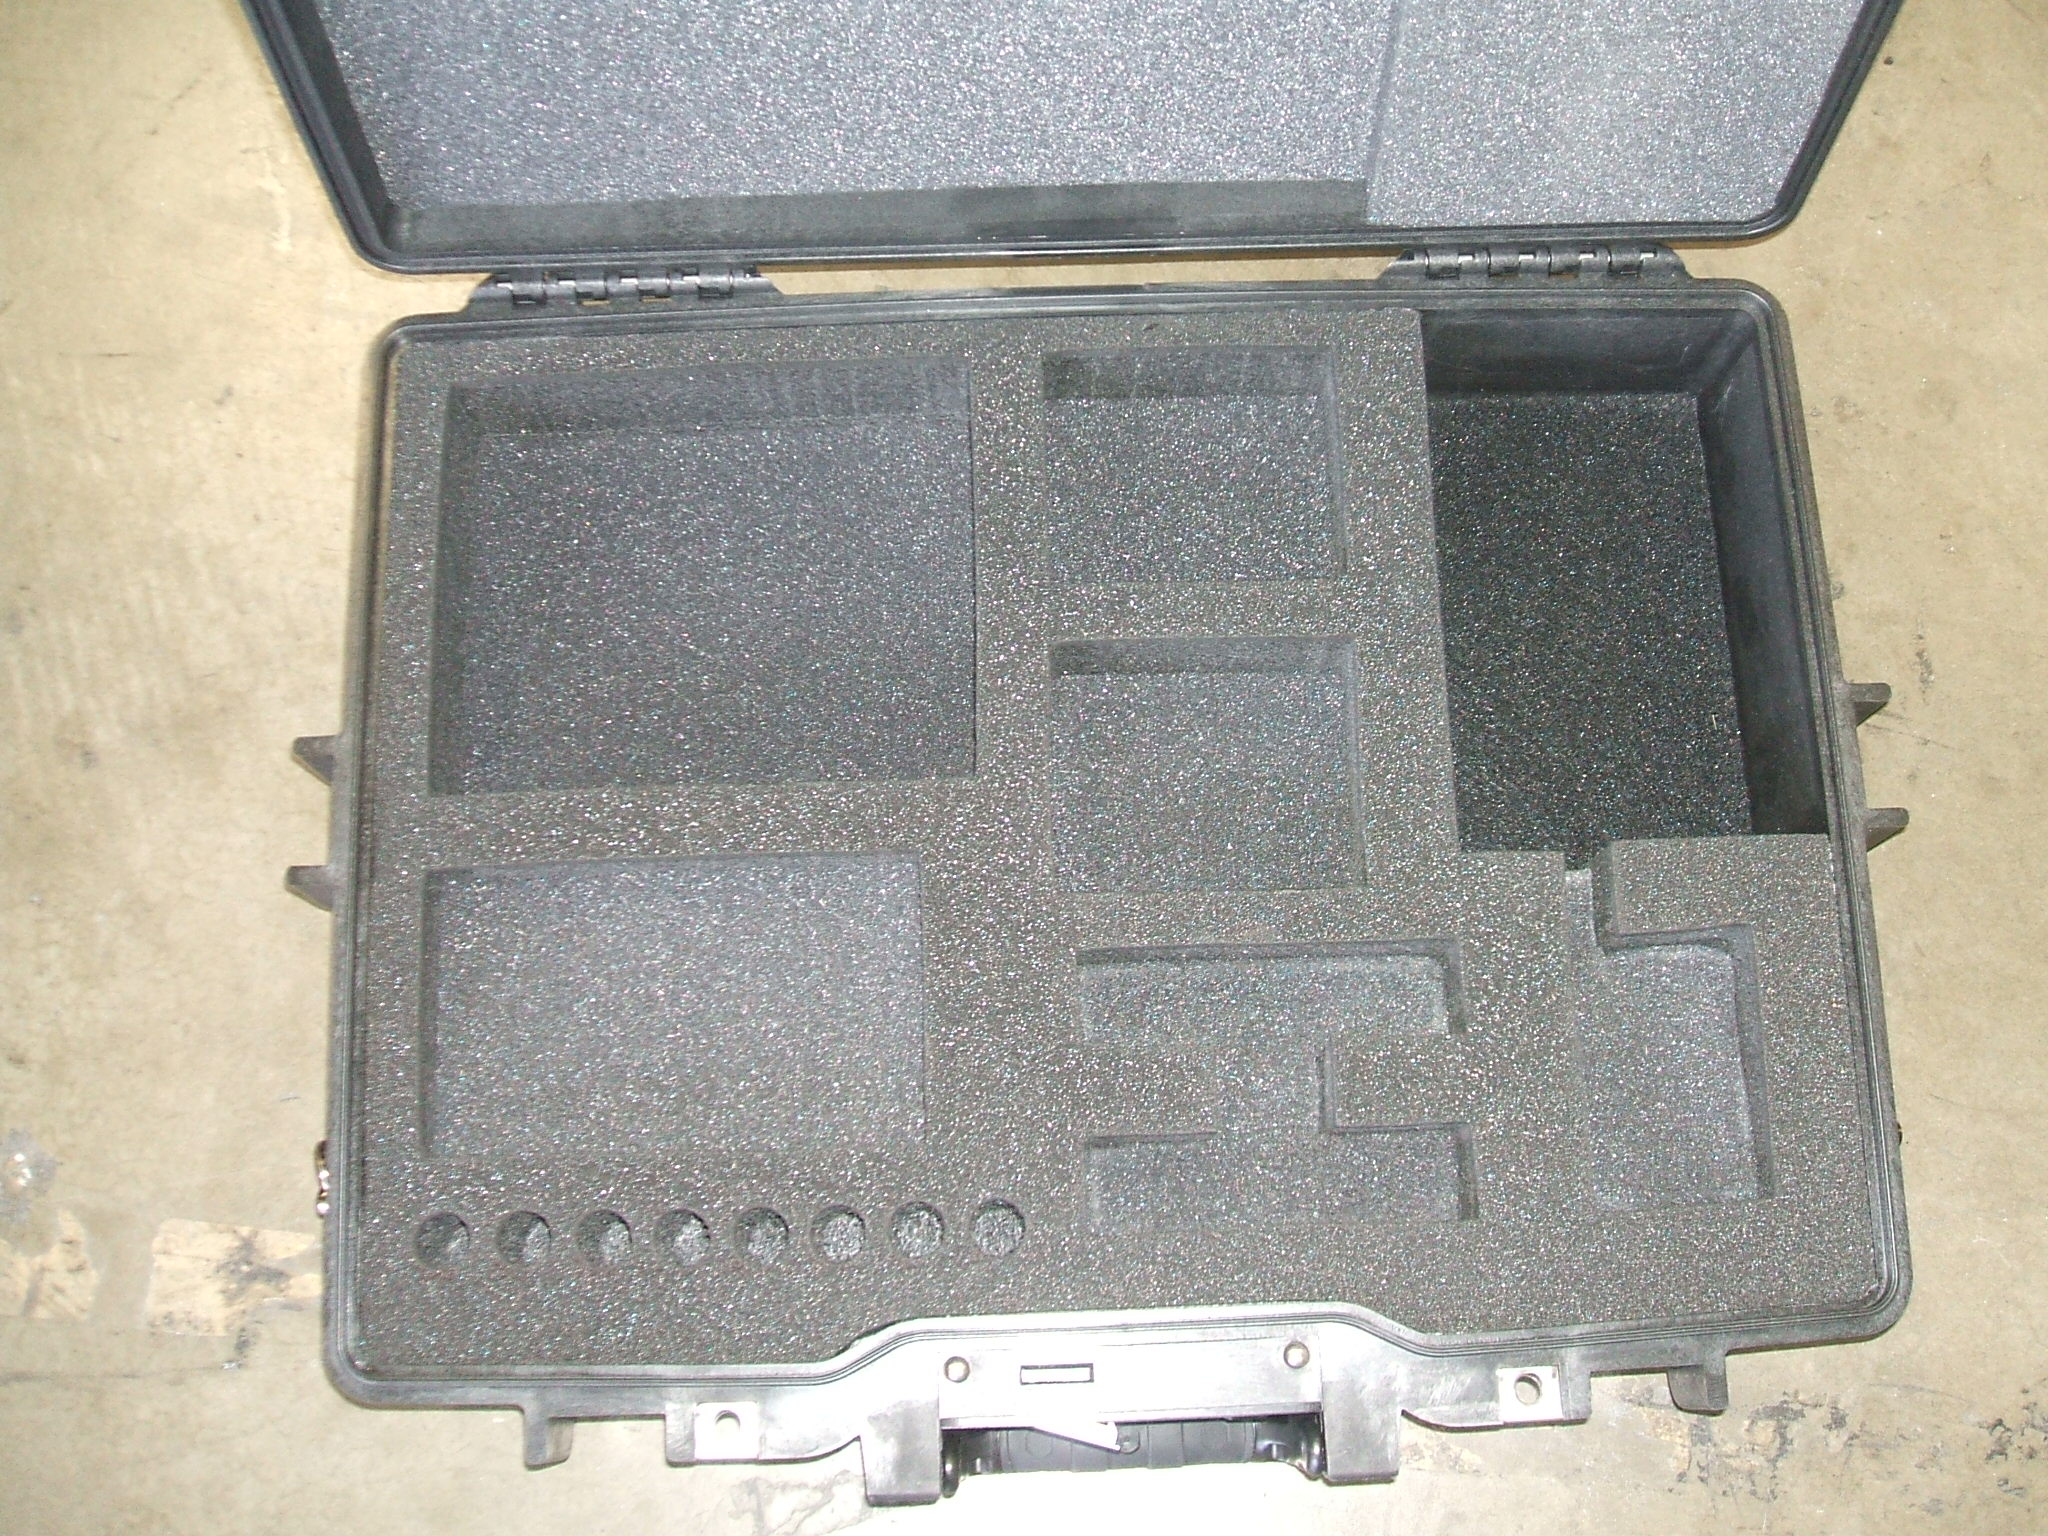 Print # 5897 - Pelican 1495 Case w/ Custom Foam Insert for (1) Shure K2U Kit which includes; (1) Shure SRH440 Headphone, (1) Marantz PMD661 MK2 Recorder, (2) Switchcraft RMAS1 Microphone Splitters, (2) Shure X2U Adapter, (1) Behringer UCA202, (8) 4 GB USB Memory Sticks, (1) Accessores Compartment By Nelson Case Corp